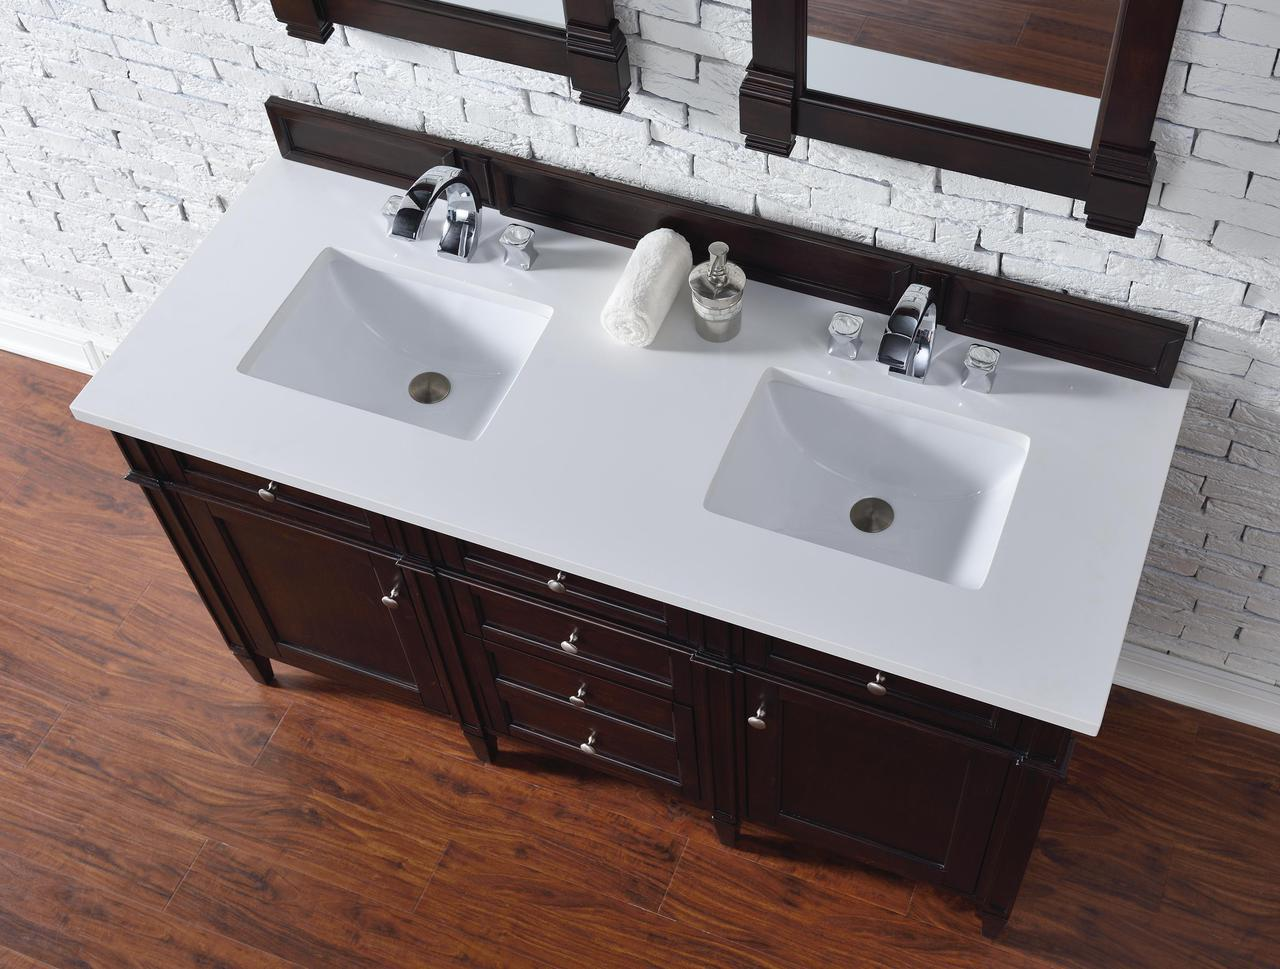 Contemporary 60 Inch Double Sink Bathroom Vanity Mahogany Finish No Top